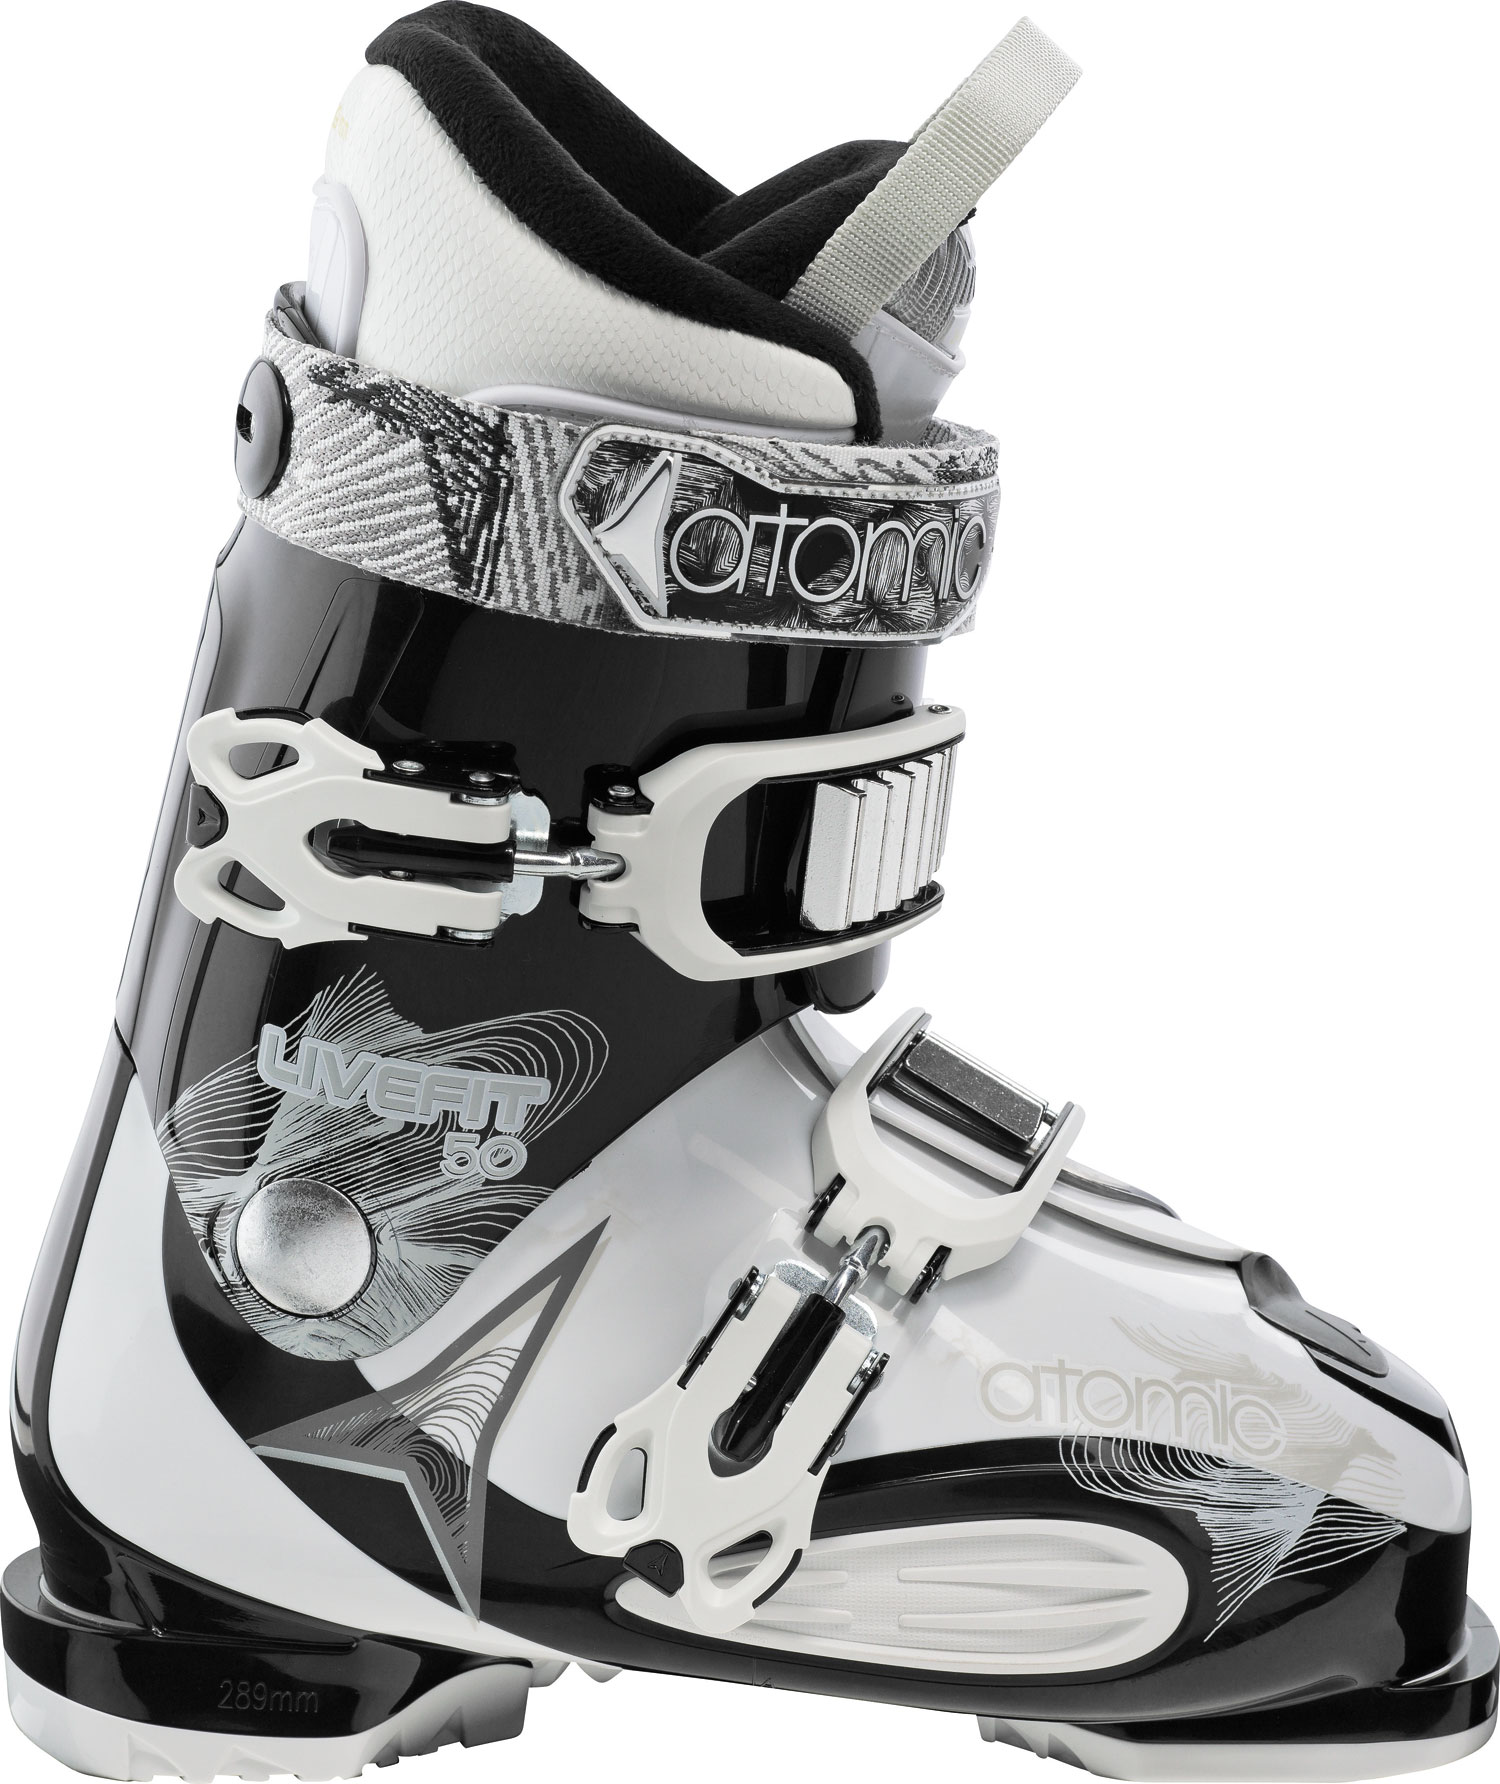 Ski Key Features of the Atomic LF 50 Ski Boots: 50 Flex Mega PC Buckle 35mm Strap ASY Comfort Liner Wide Fit Soft Flex - $174.95